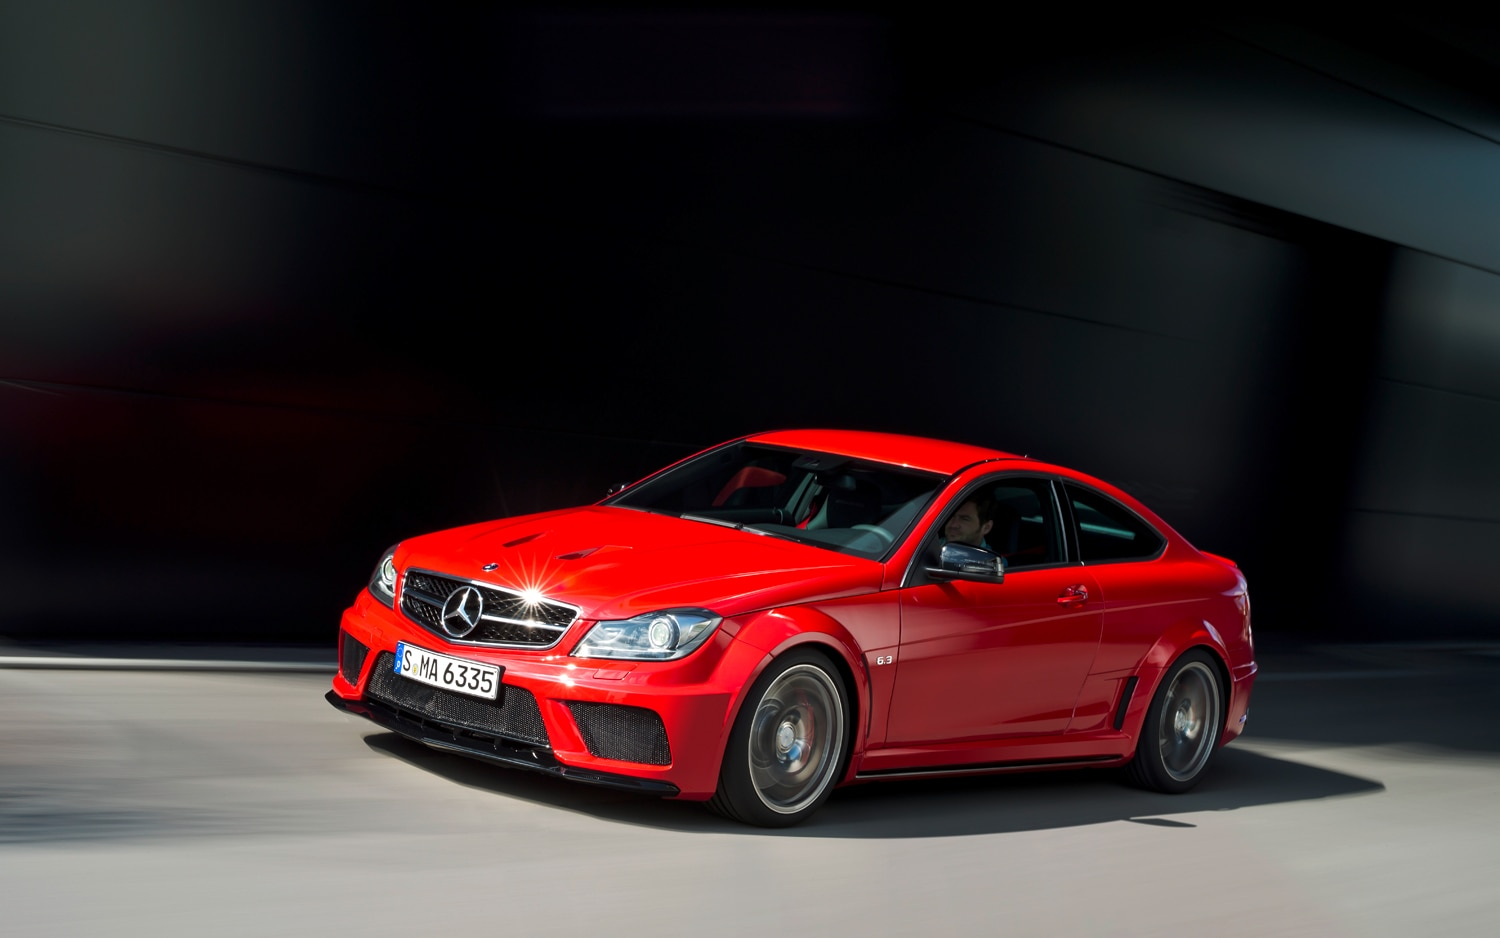 2012 Mercedes Benz C63 AMG Coupe Black Series Front Left Side View1